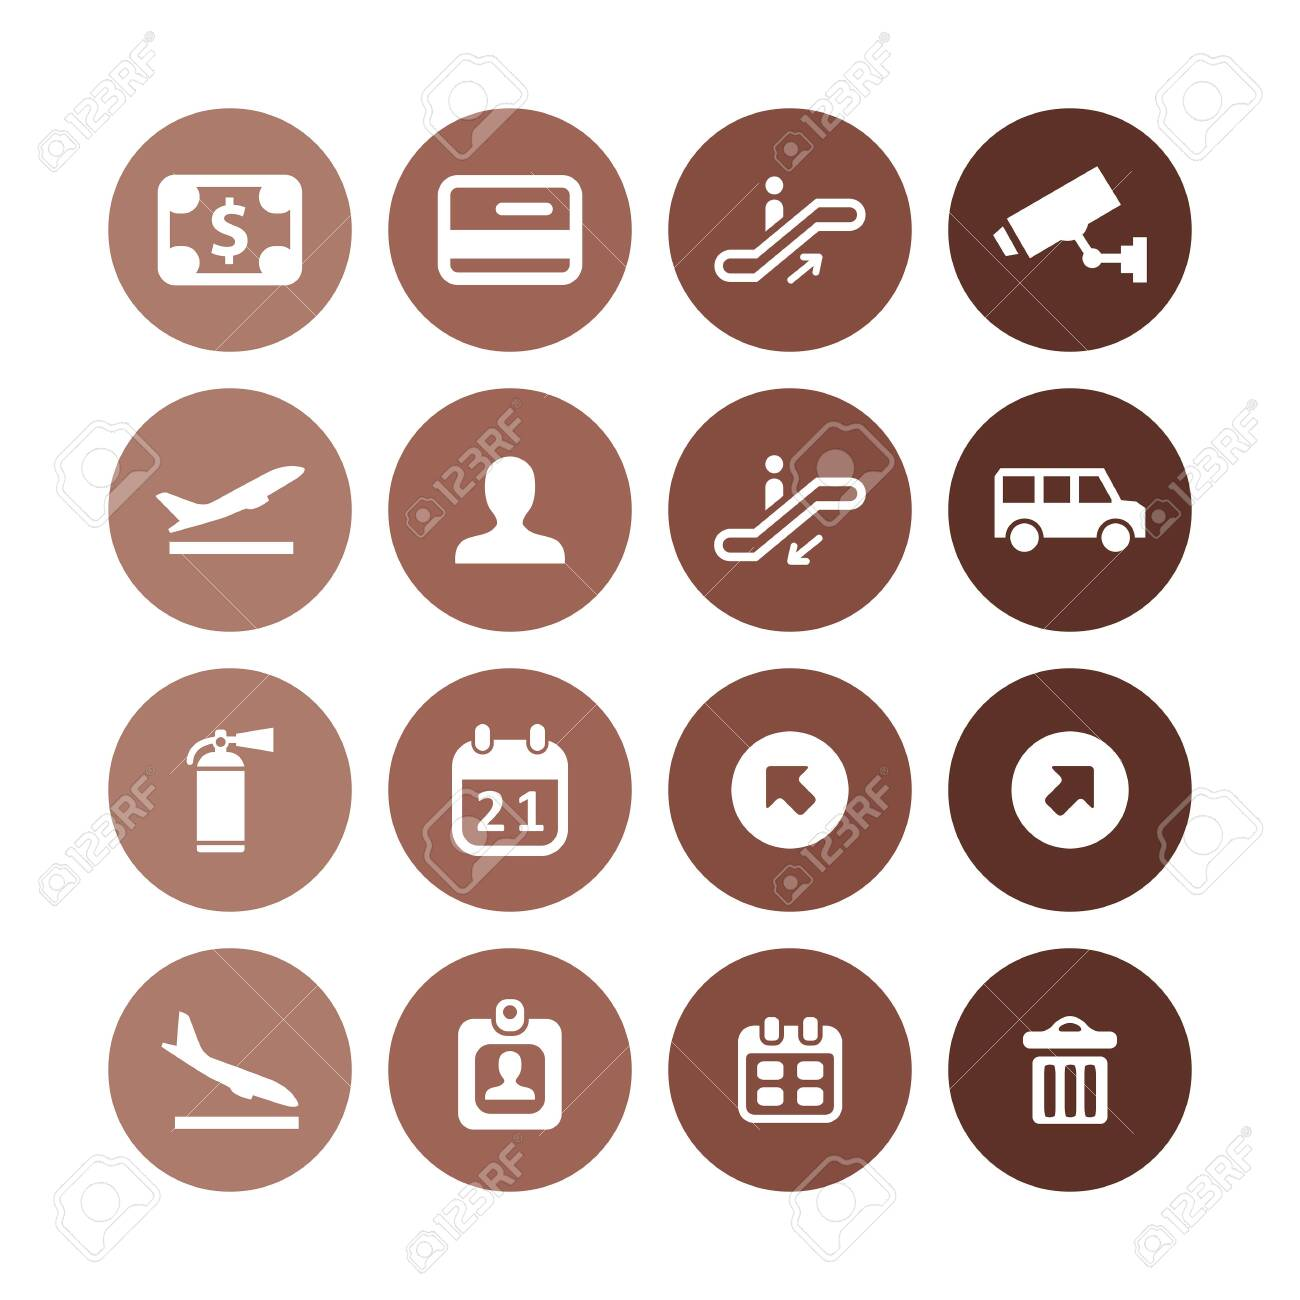 airport icons universal set for web and UI - 130456441